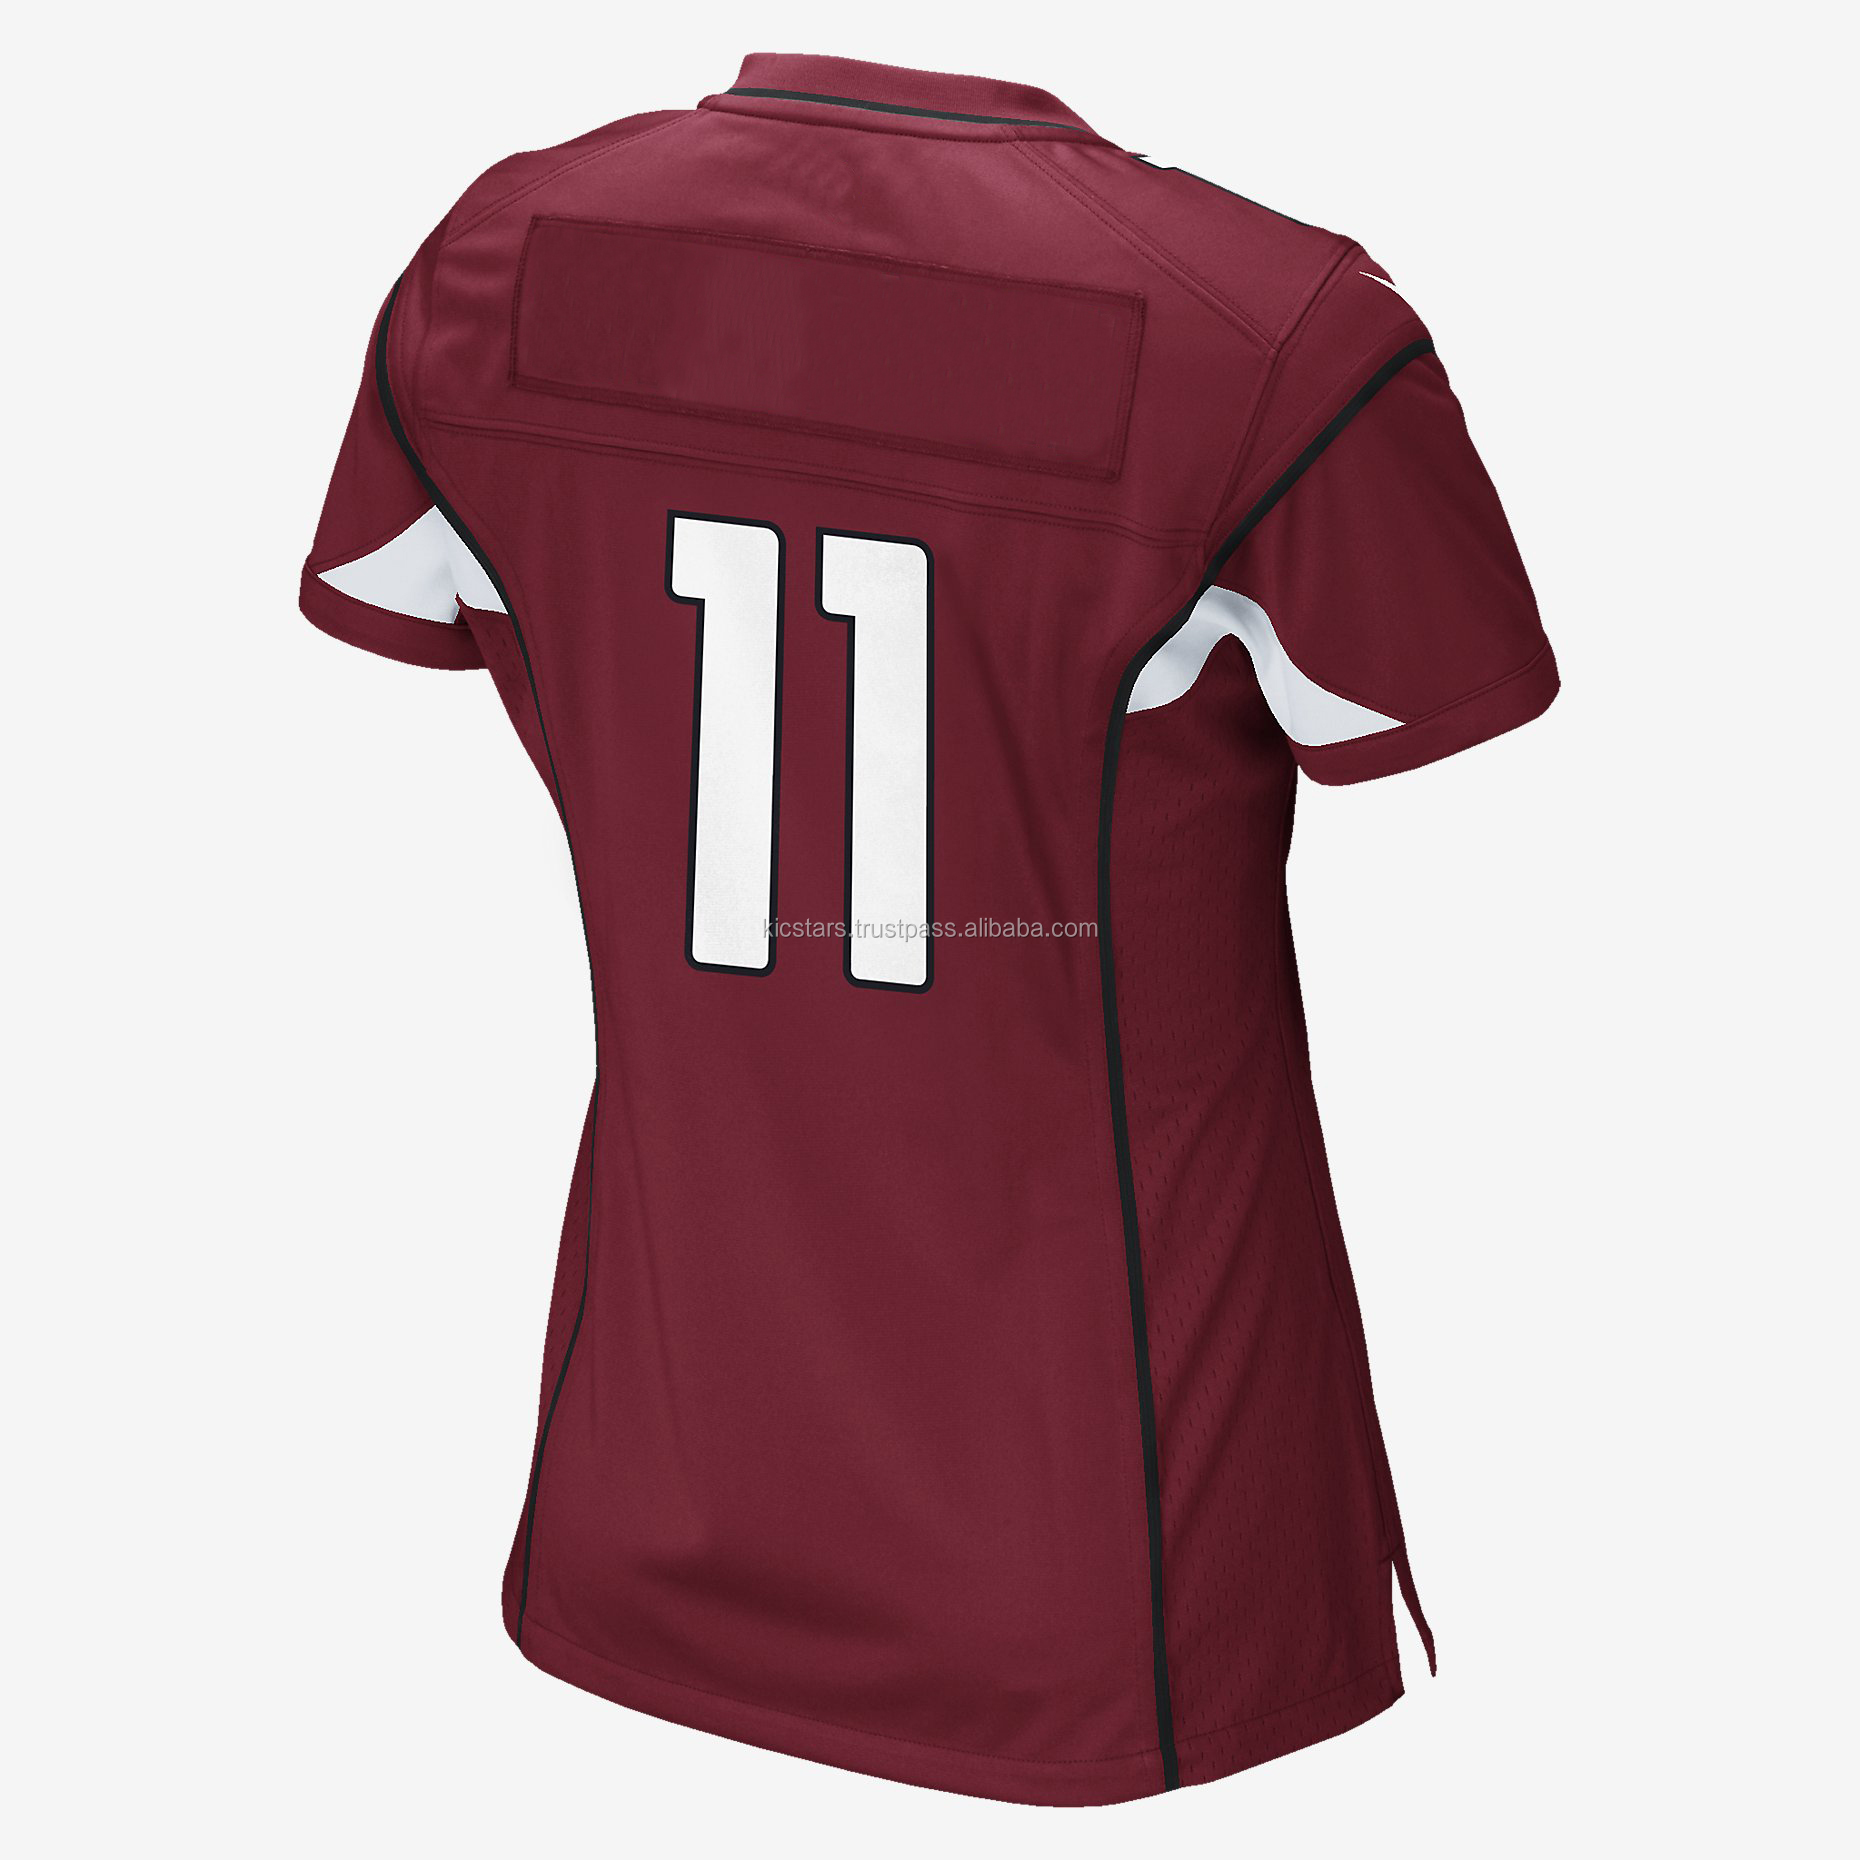 Best selling custom high quality soccer jersey